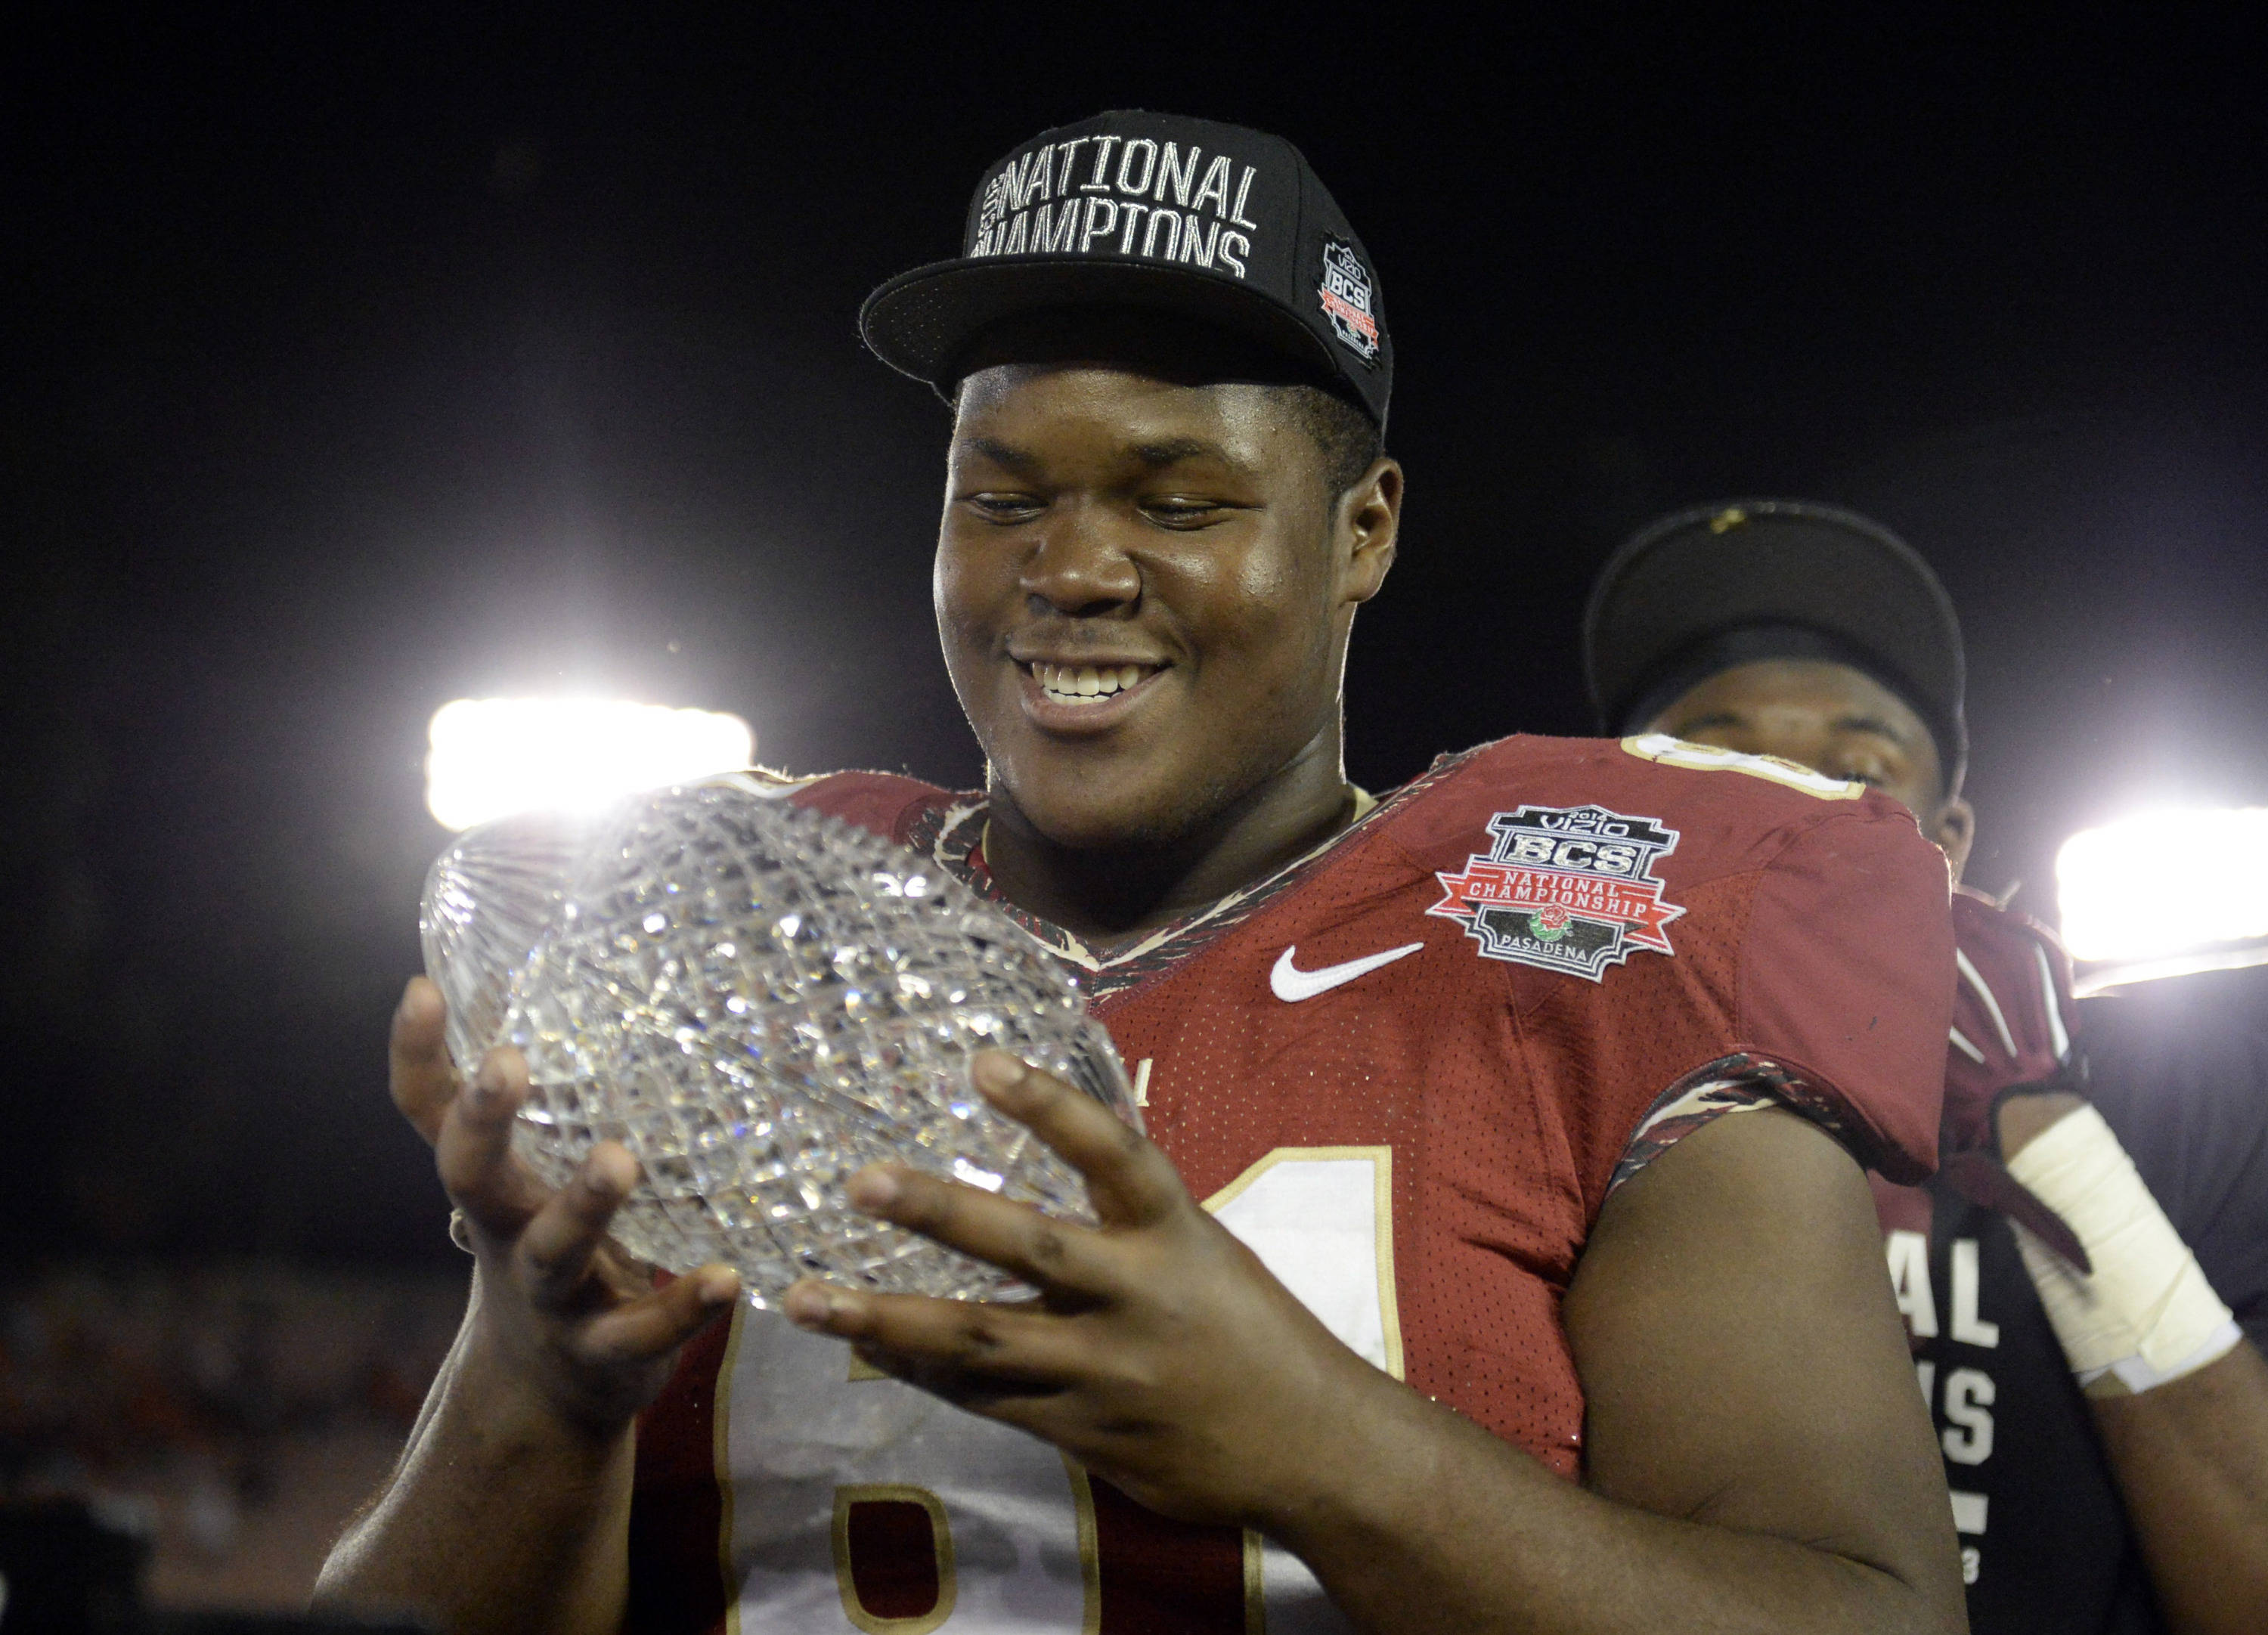 Jan 6, 2014; Pasadena, CA, USA; Florida State Seminoles offensive linesman Myles Davis (61) celebrates with the Coaches Trophy after winning the 2014 BCS National Championship game against Auburn Tigers 34-31 at the Rose Bowl.  Mandatory Credit: Richard Mackson-USA TODAY Sports